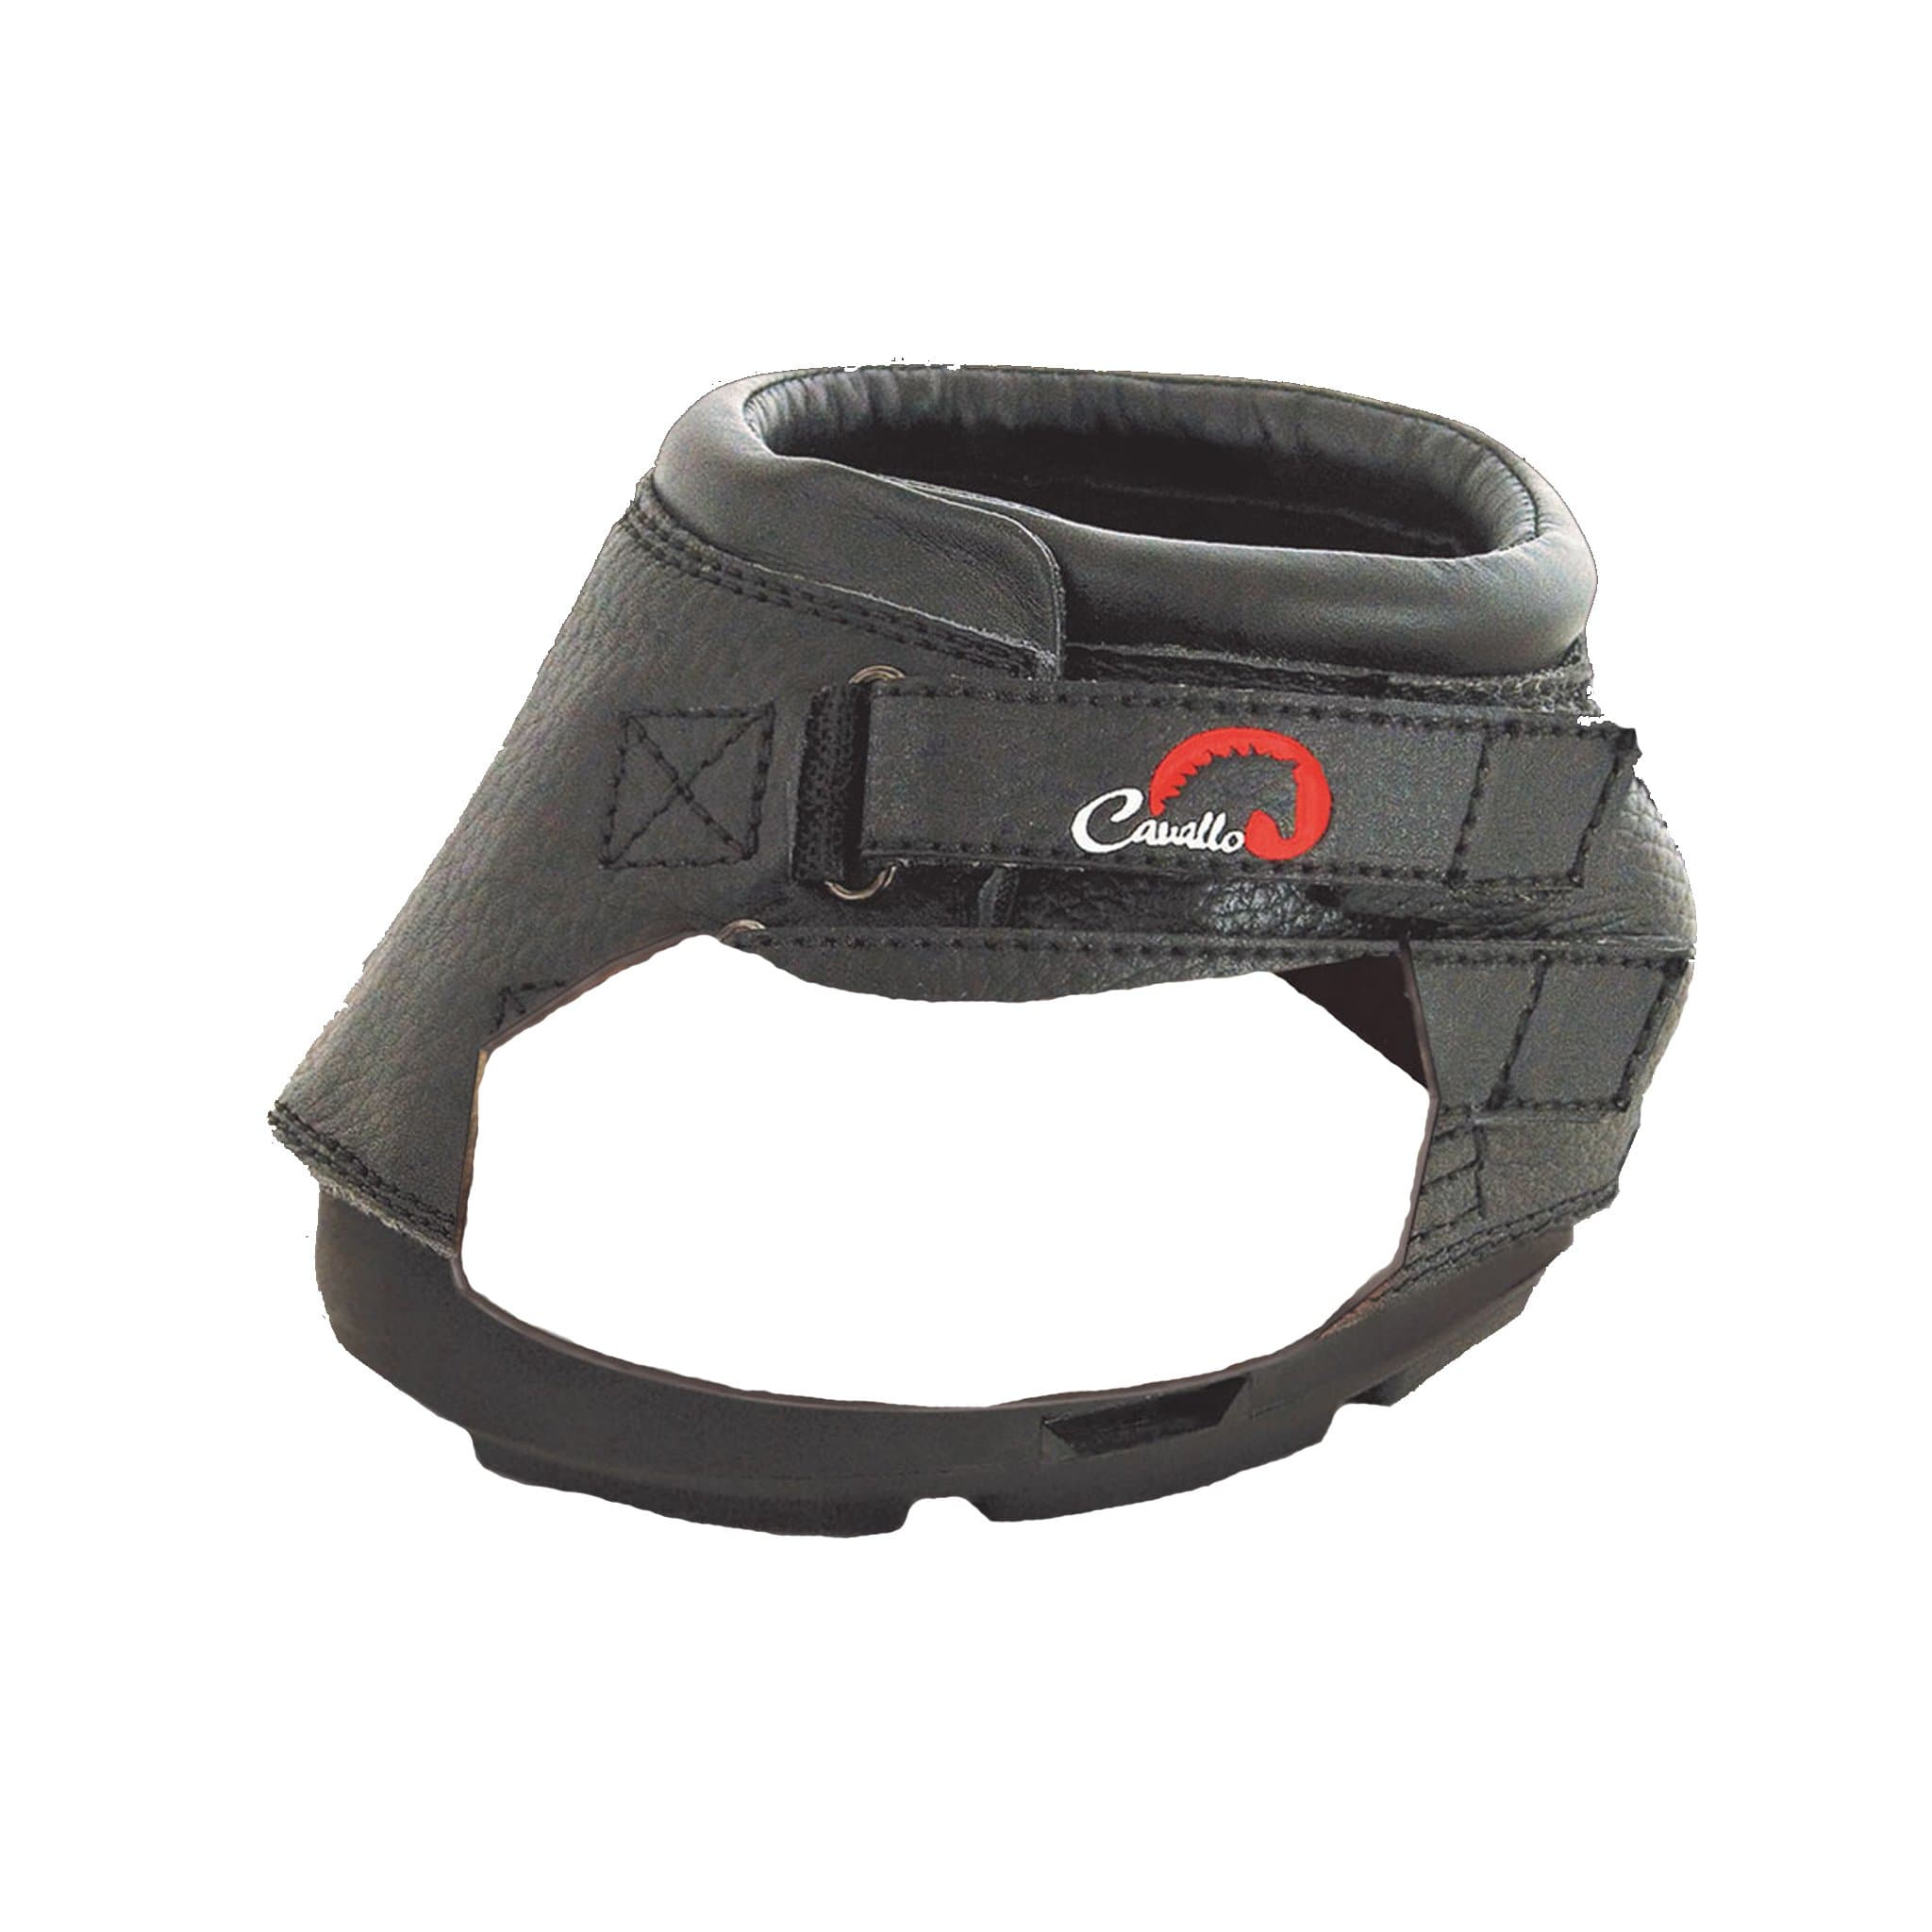 Cavallo Support Pads 11611